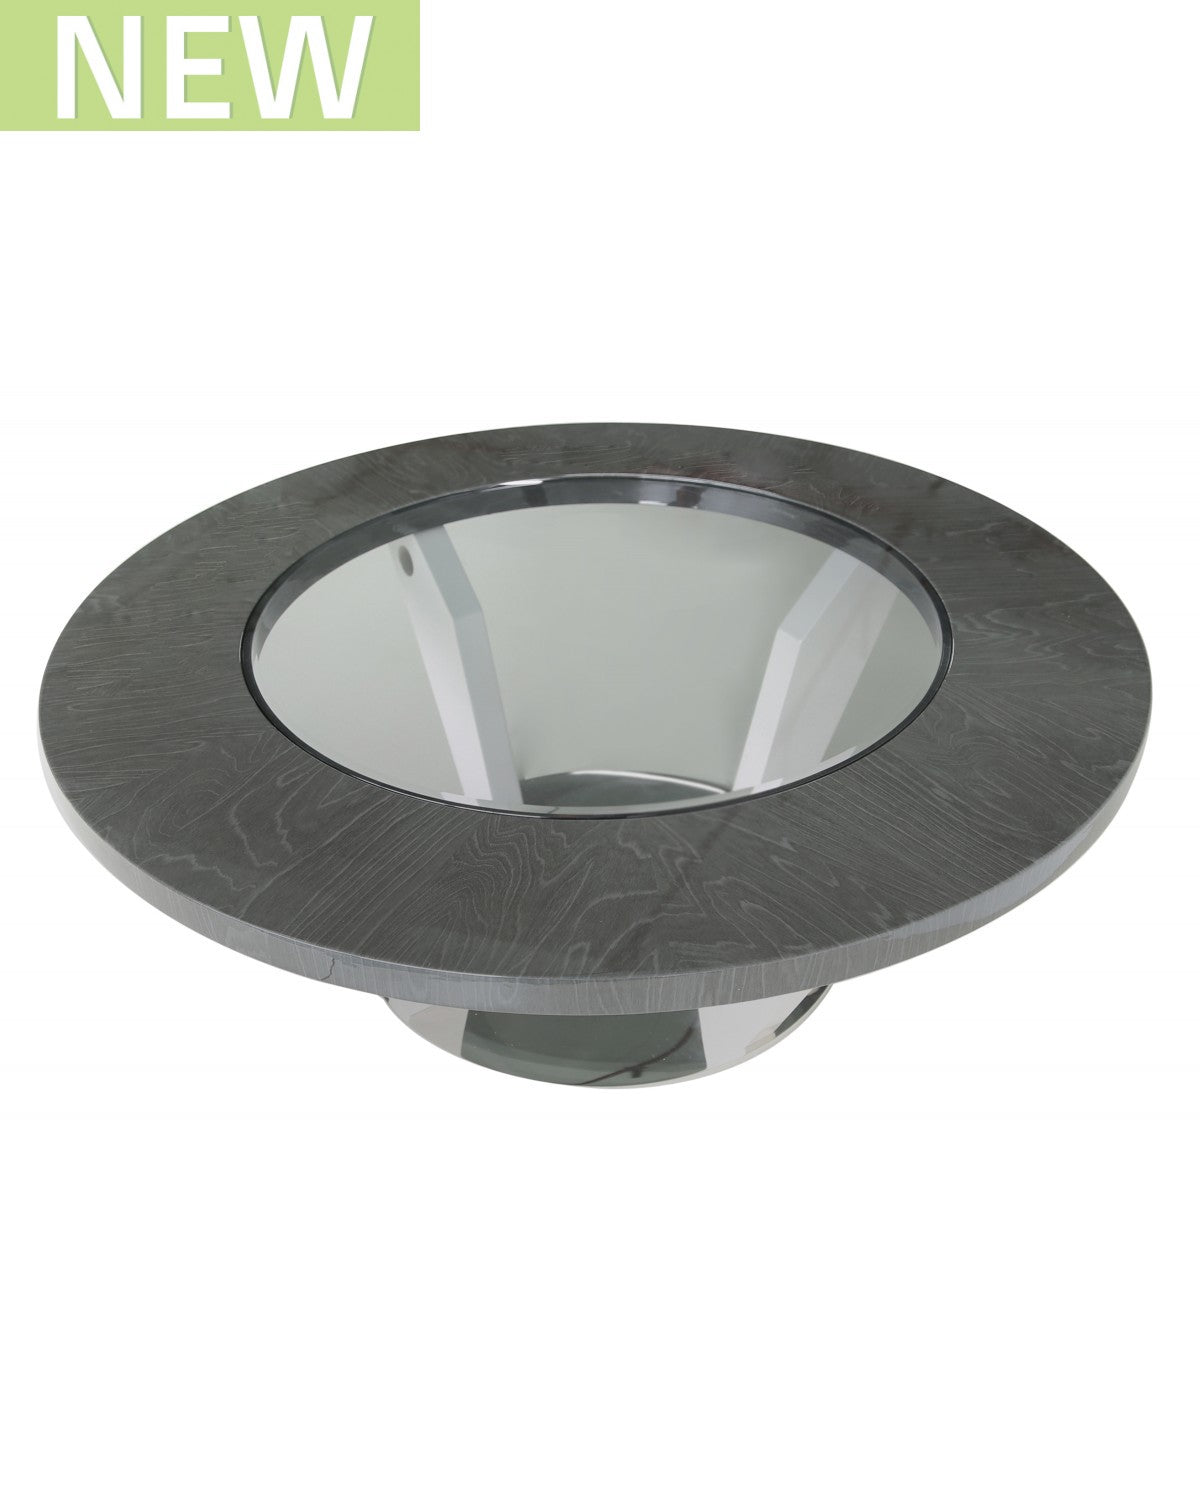 Evoke Dark Grey Round Coffee Table